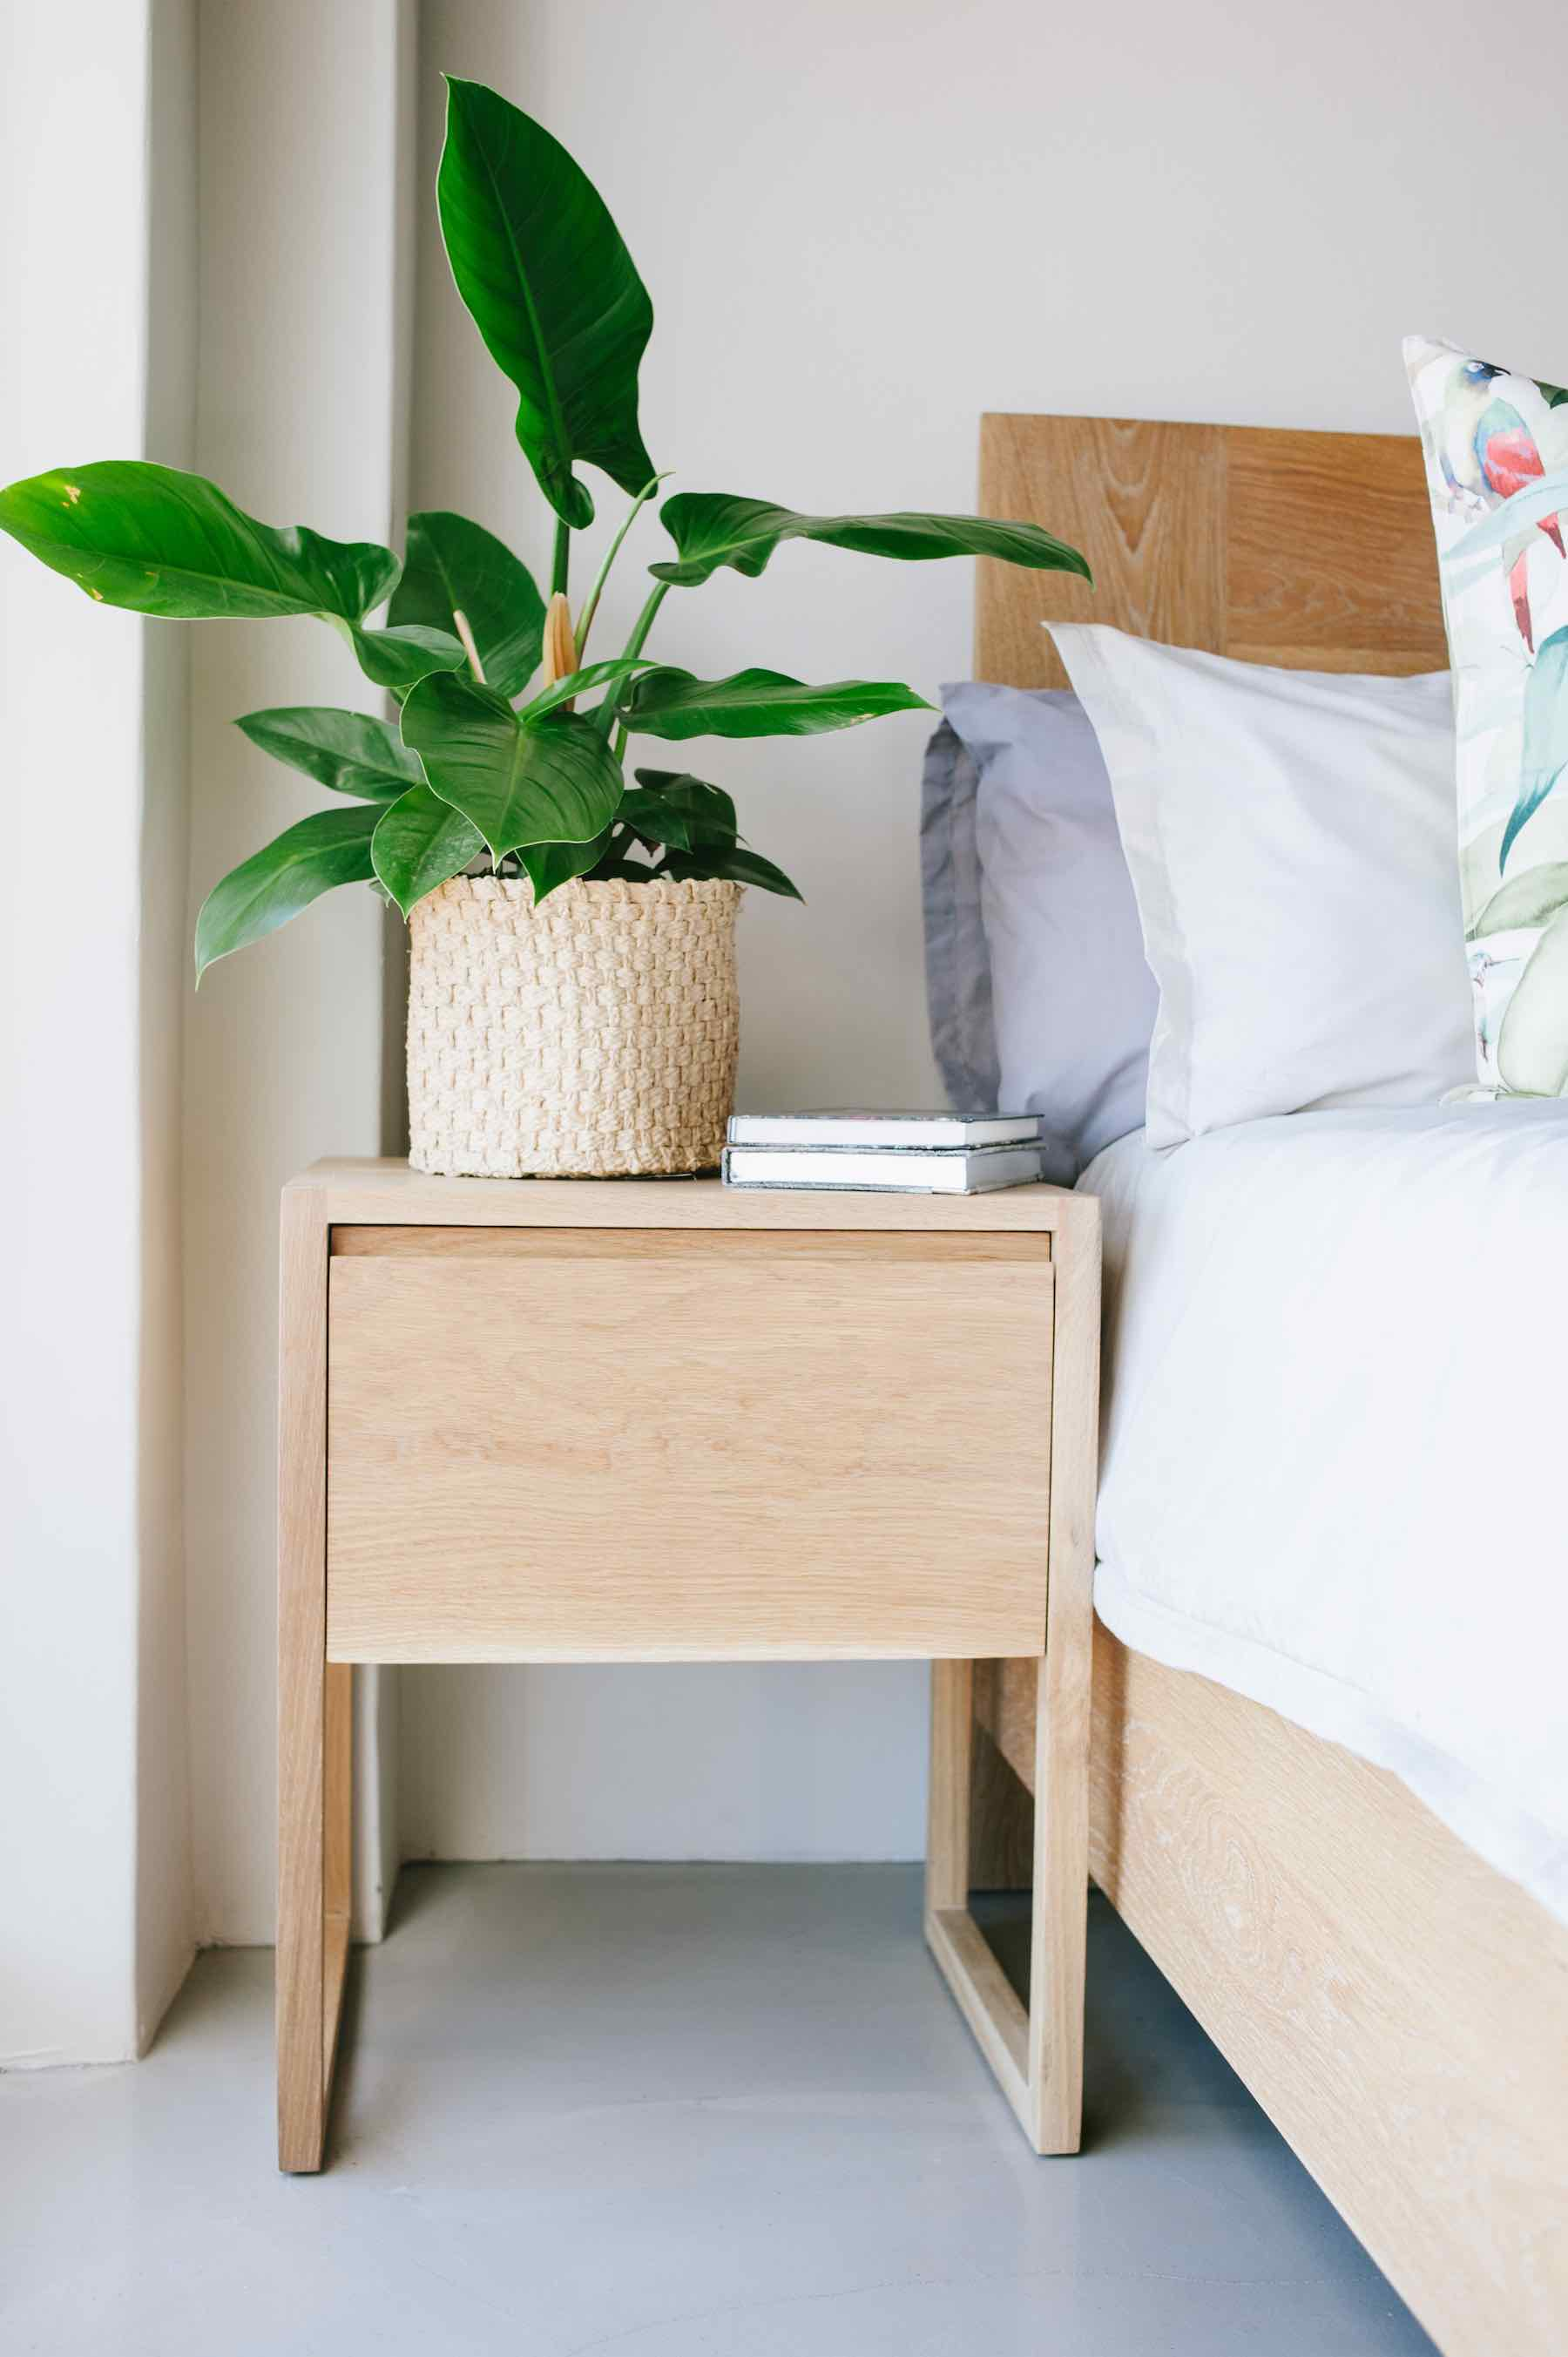 swazi-bedside-table-indoor-plant